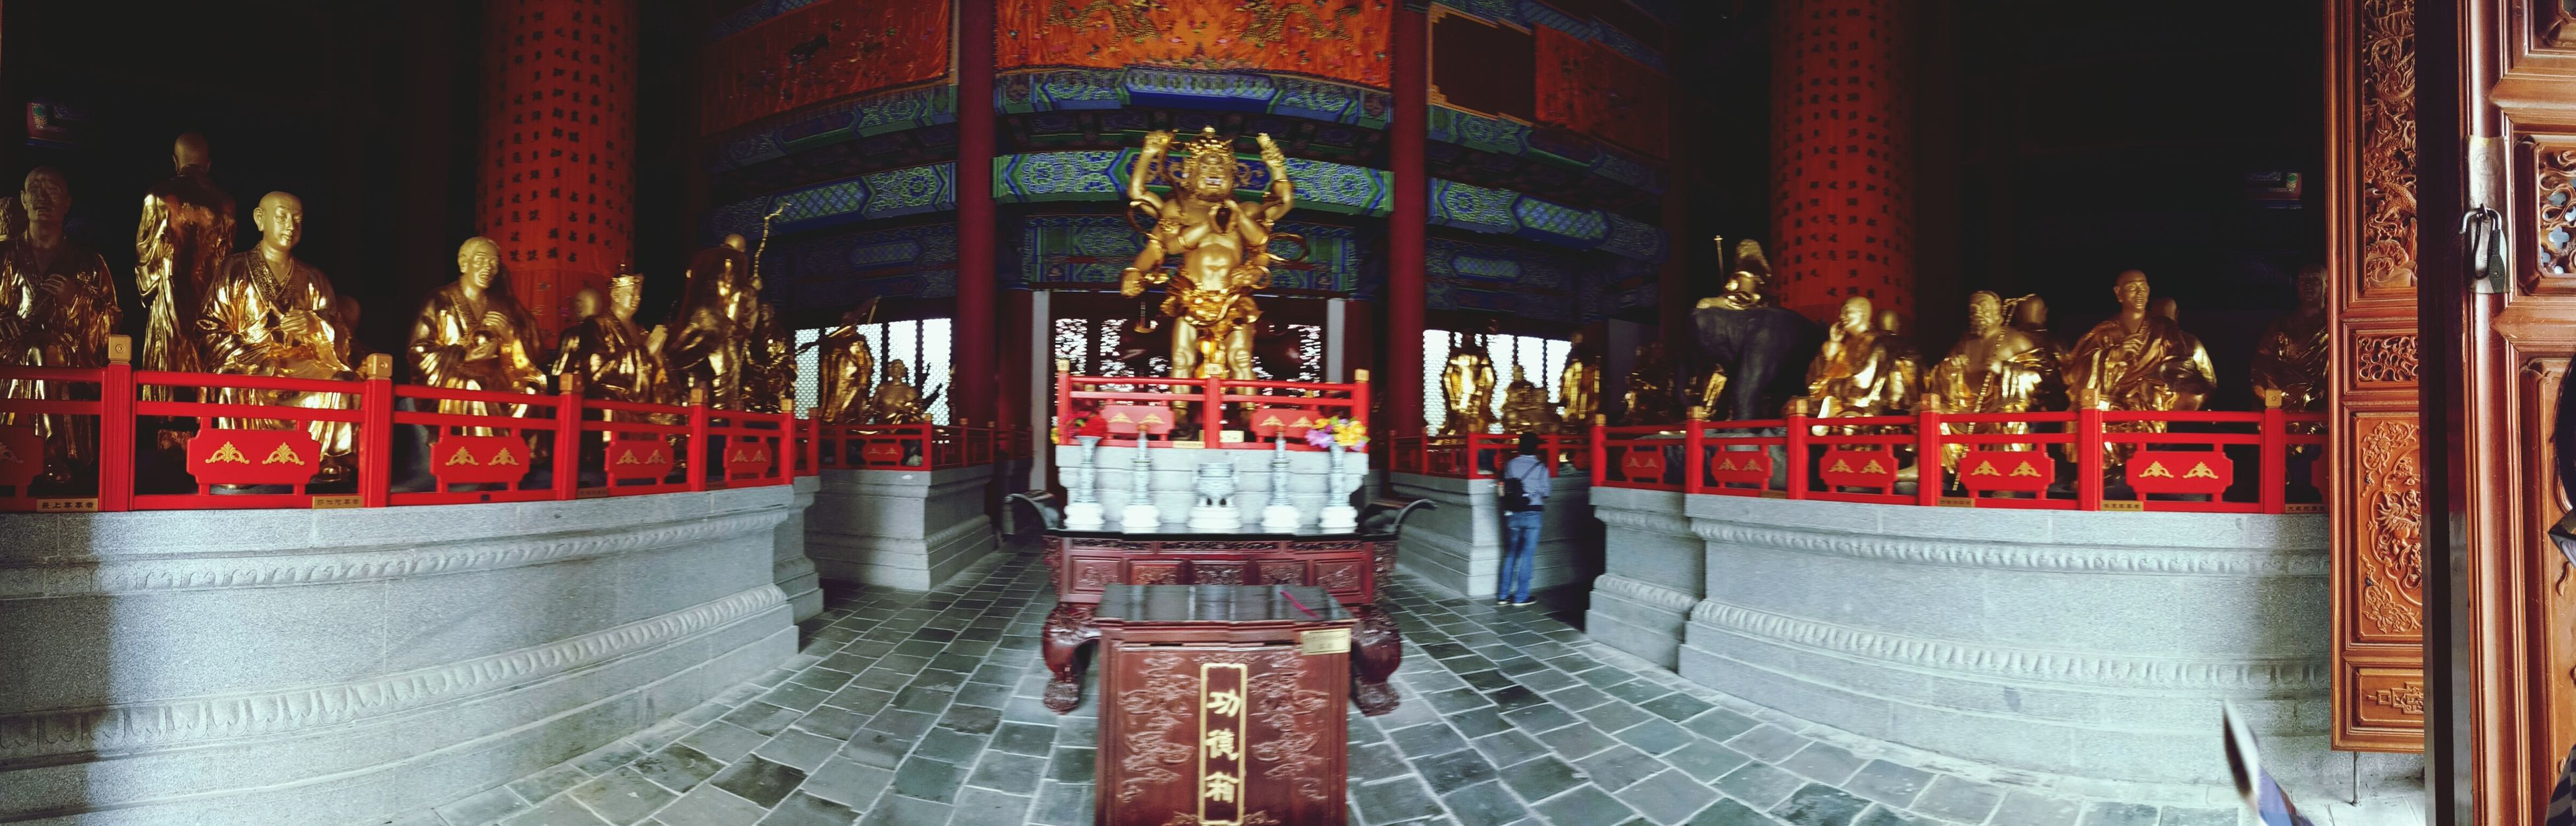 place of worship, religion, spirituality, statue, buddha, sculpture, temple - building, human representation, red, art and craft, incense, altar, idol, temple, religious offering, culture, creativity, golden color